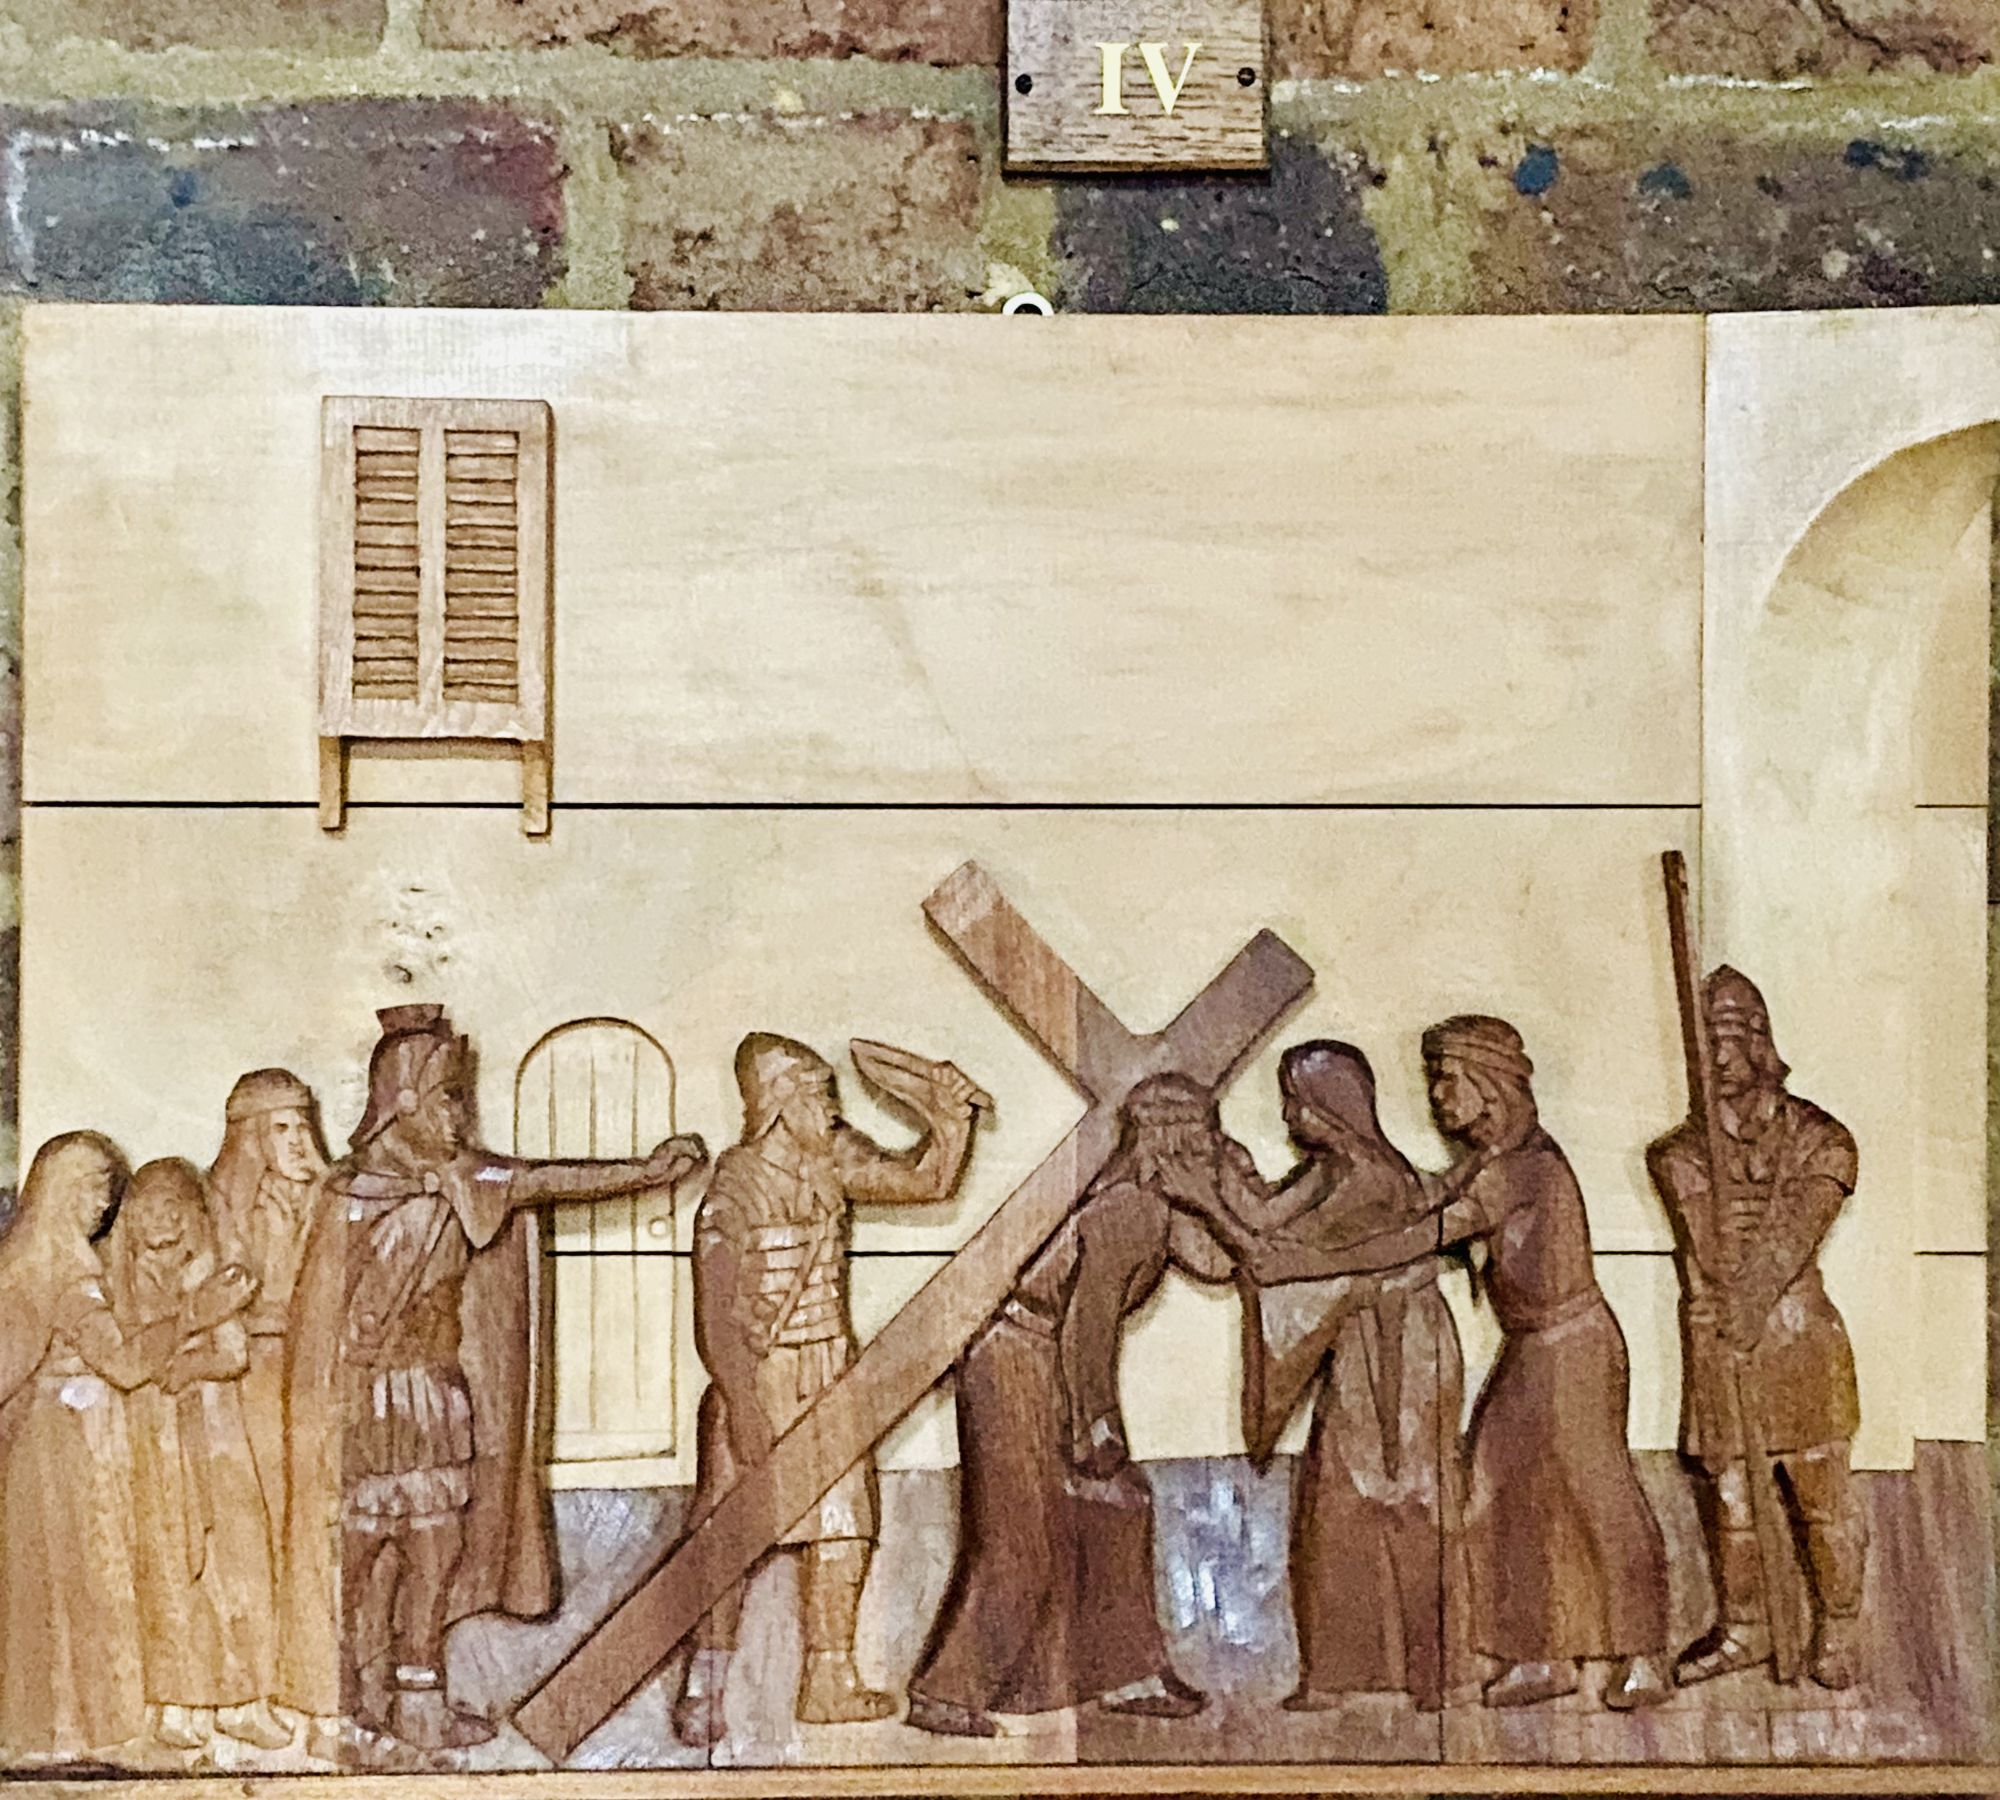 Station of the Cross No 4